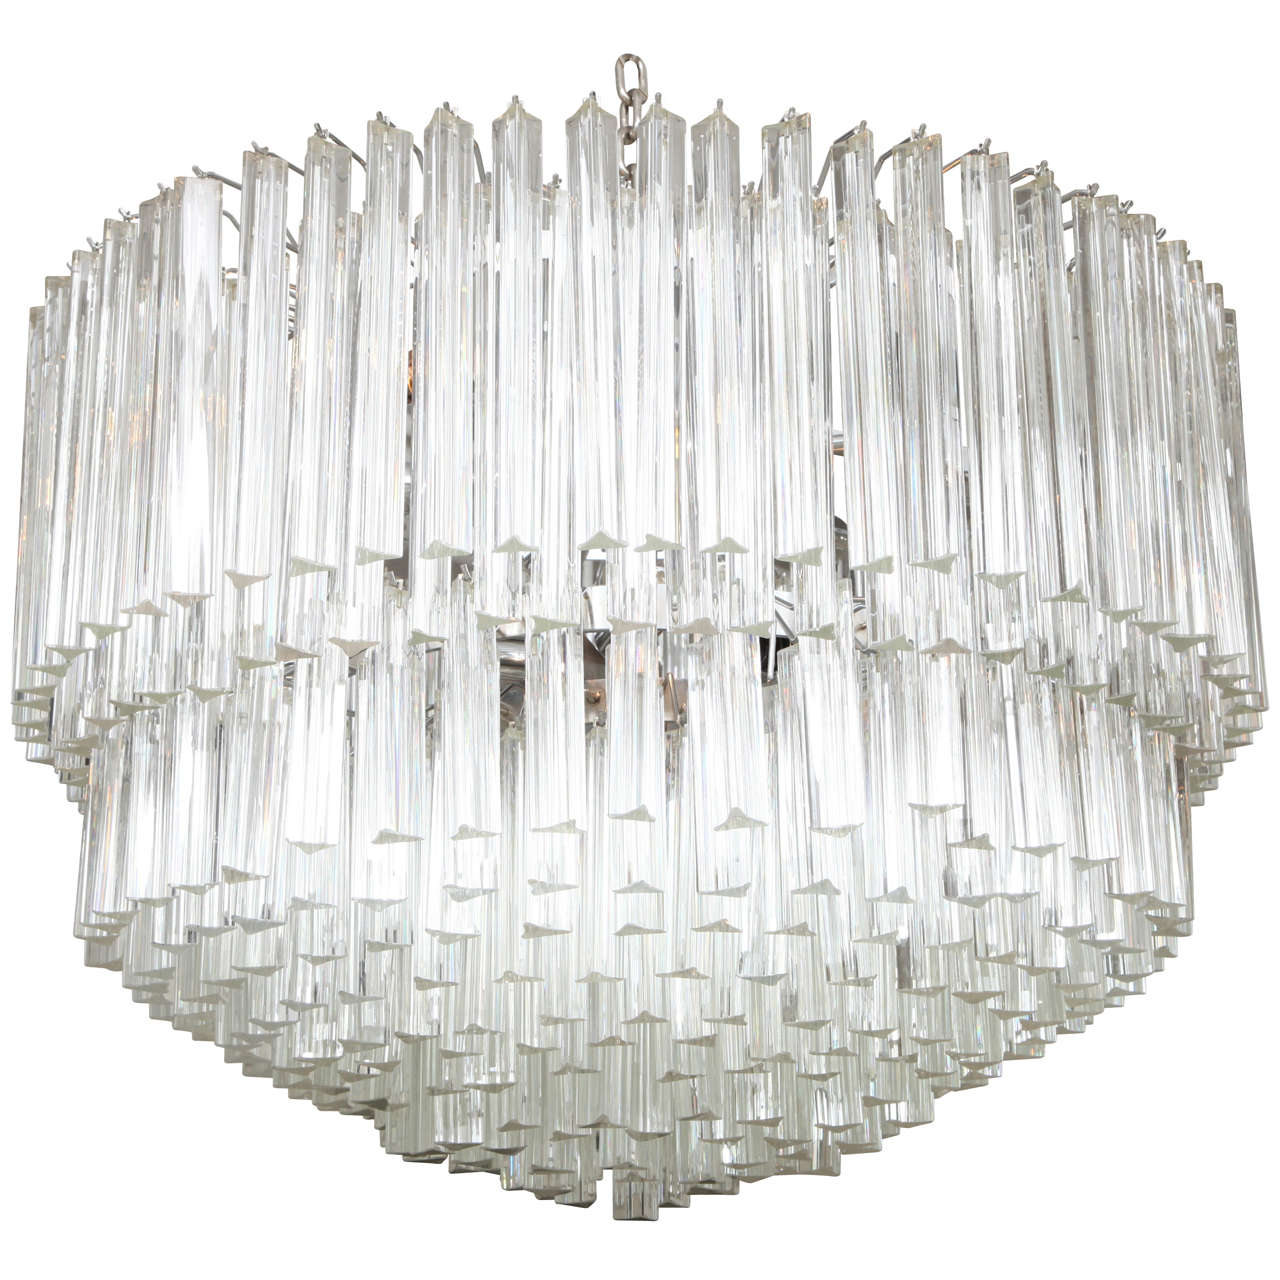 Exquisite Camer Style Murano Glass Chandelier (Matching Sconces Avail.) For Sale